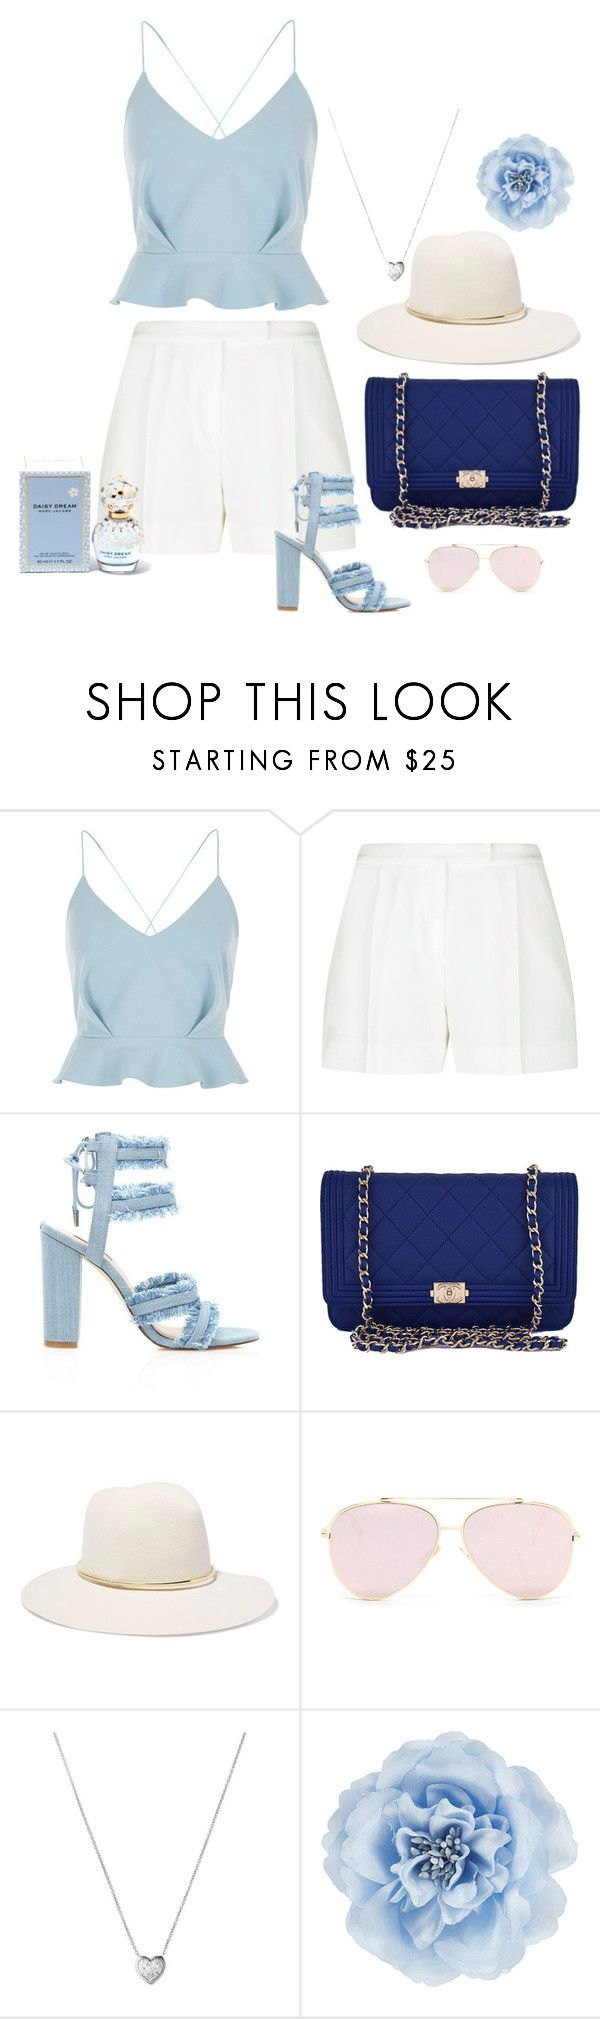 Untitled #54 by nicole-perestrelo21 on Polyvore featuring River Island, Elie Saab, Chanel, Links of London, Janessa Leone, Monsoon, Marc Jacobs, Blue, marcjacobs and daisydream